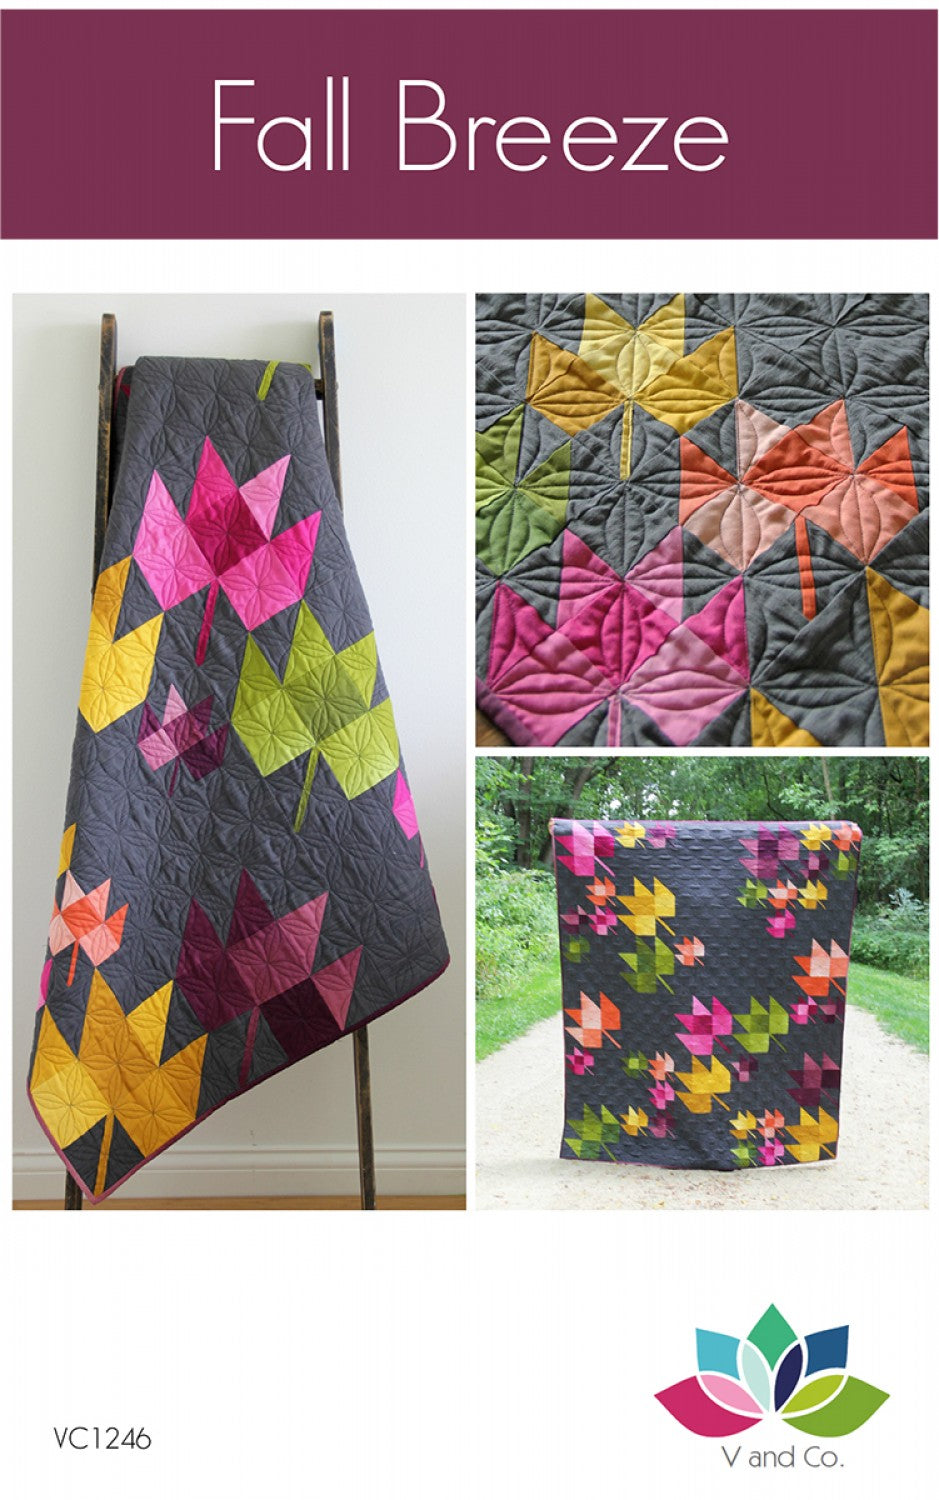 Fall Breeze Ombre Quilt Pattern by Vanessa Christenson of V and Co